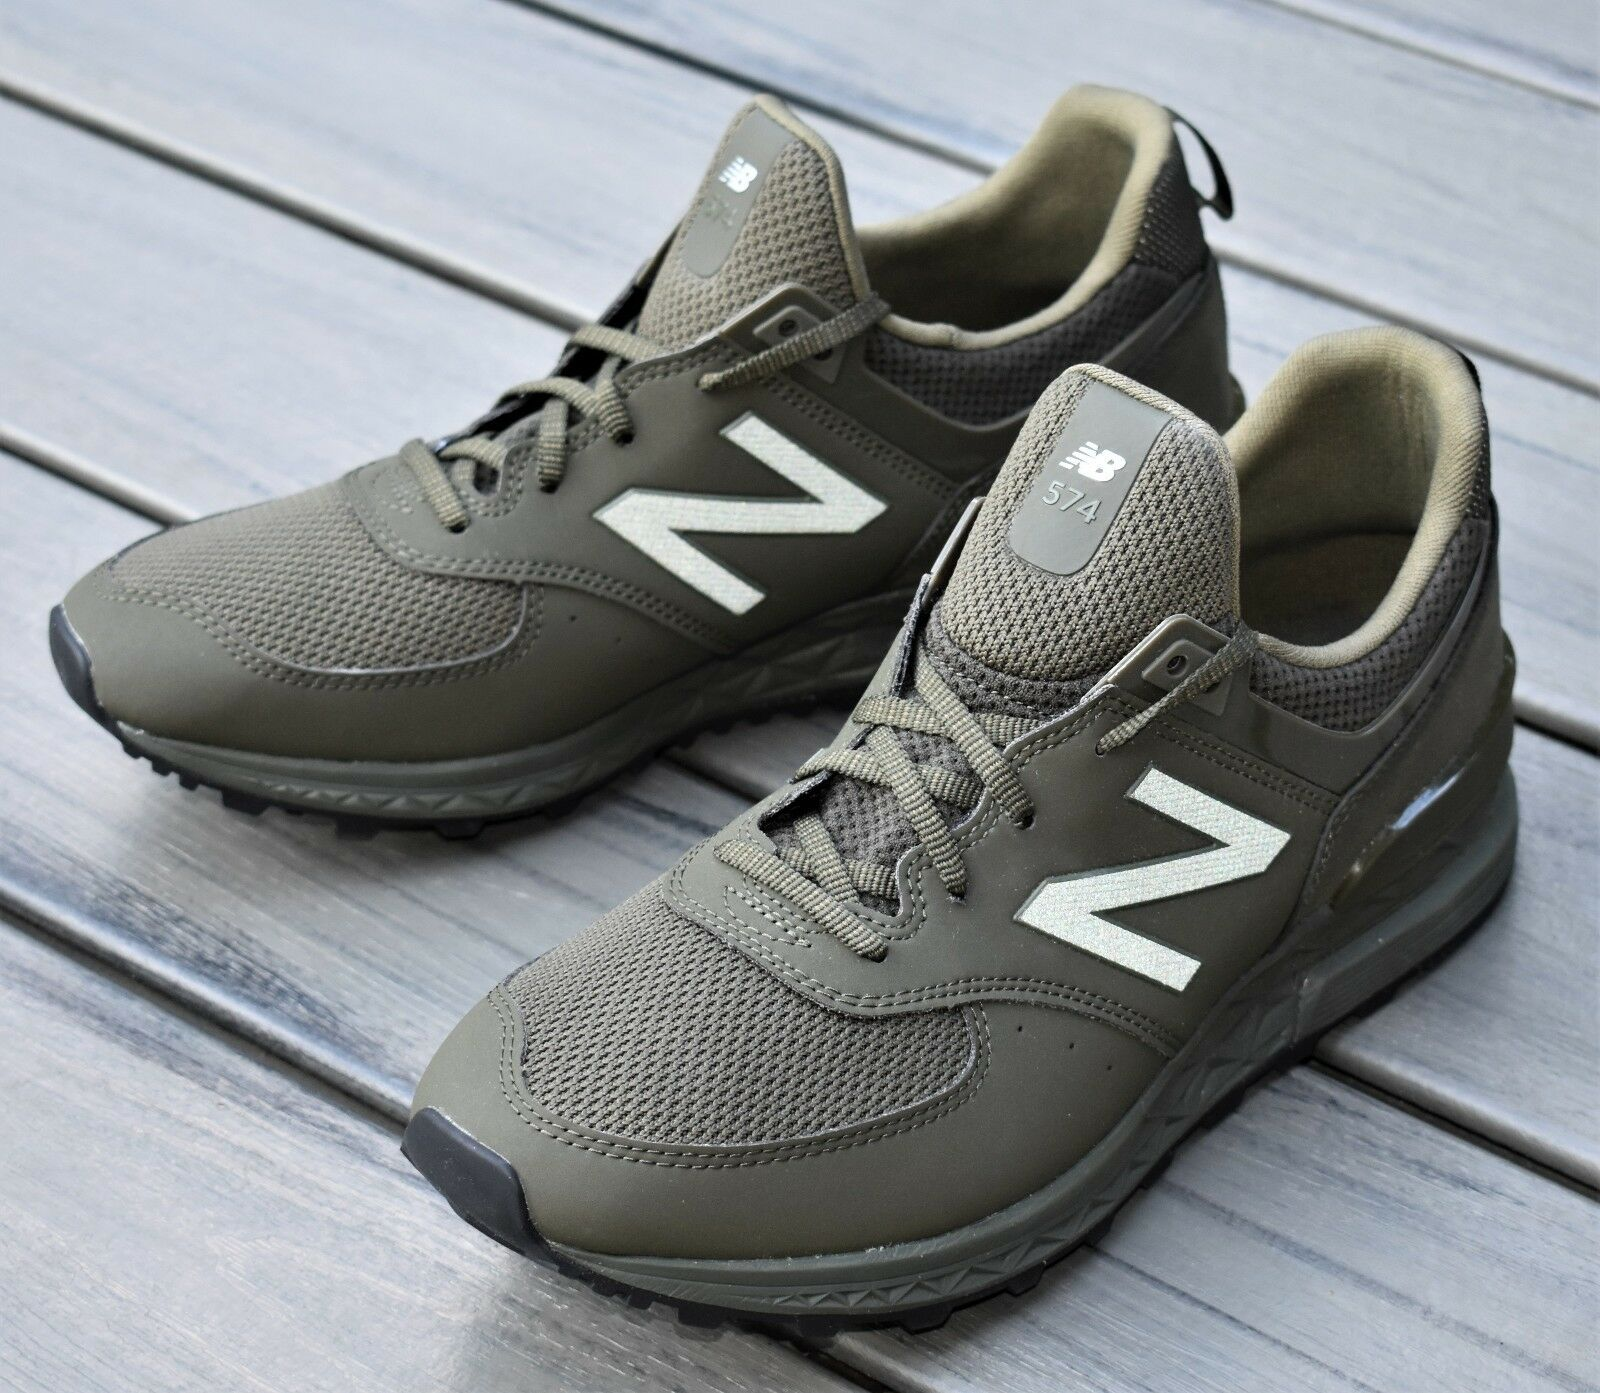 NB NEW BALANCE 574 SPORT LIFESTYLE NEW MEN'S FASHION SNEAKER SHOES OLIVE GREEN